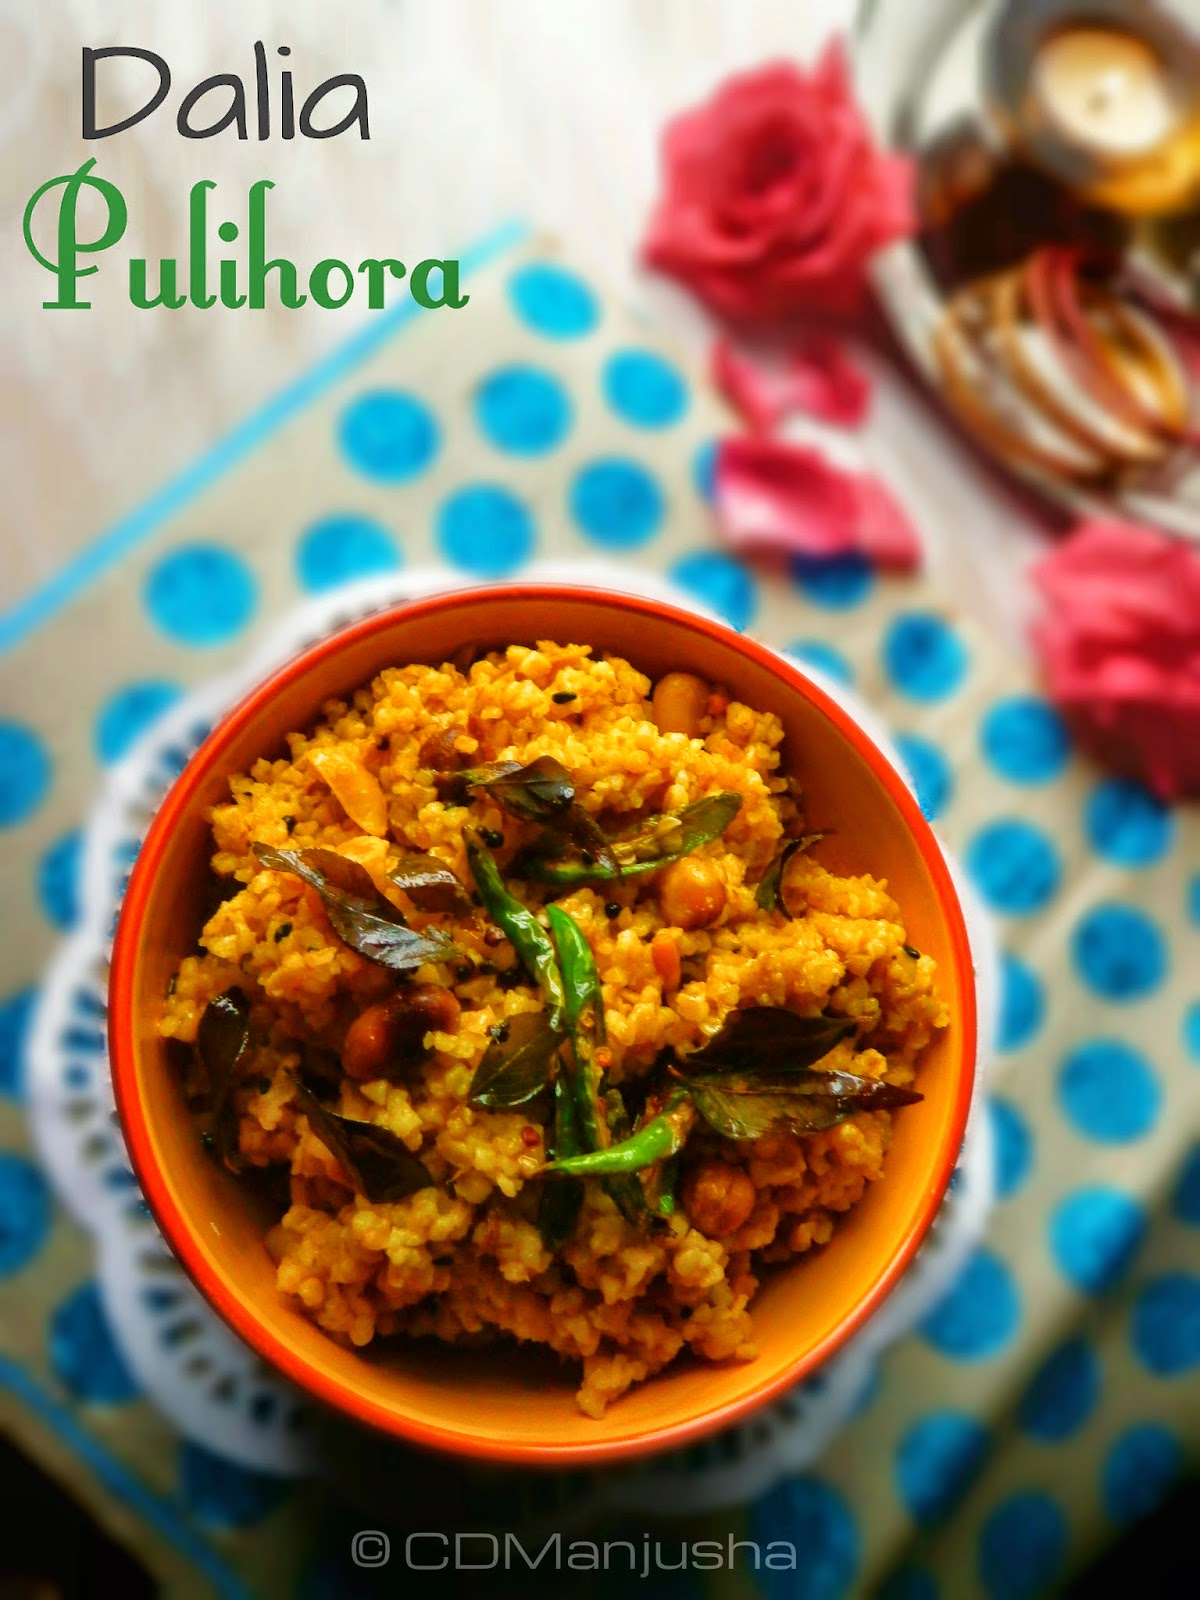 cracked_wheat_pulihora